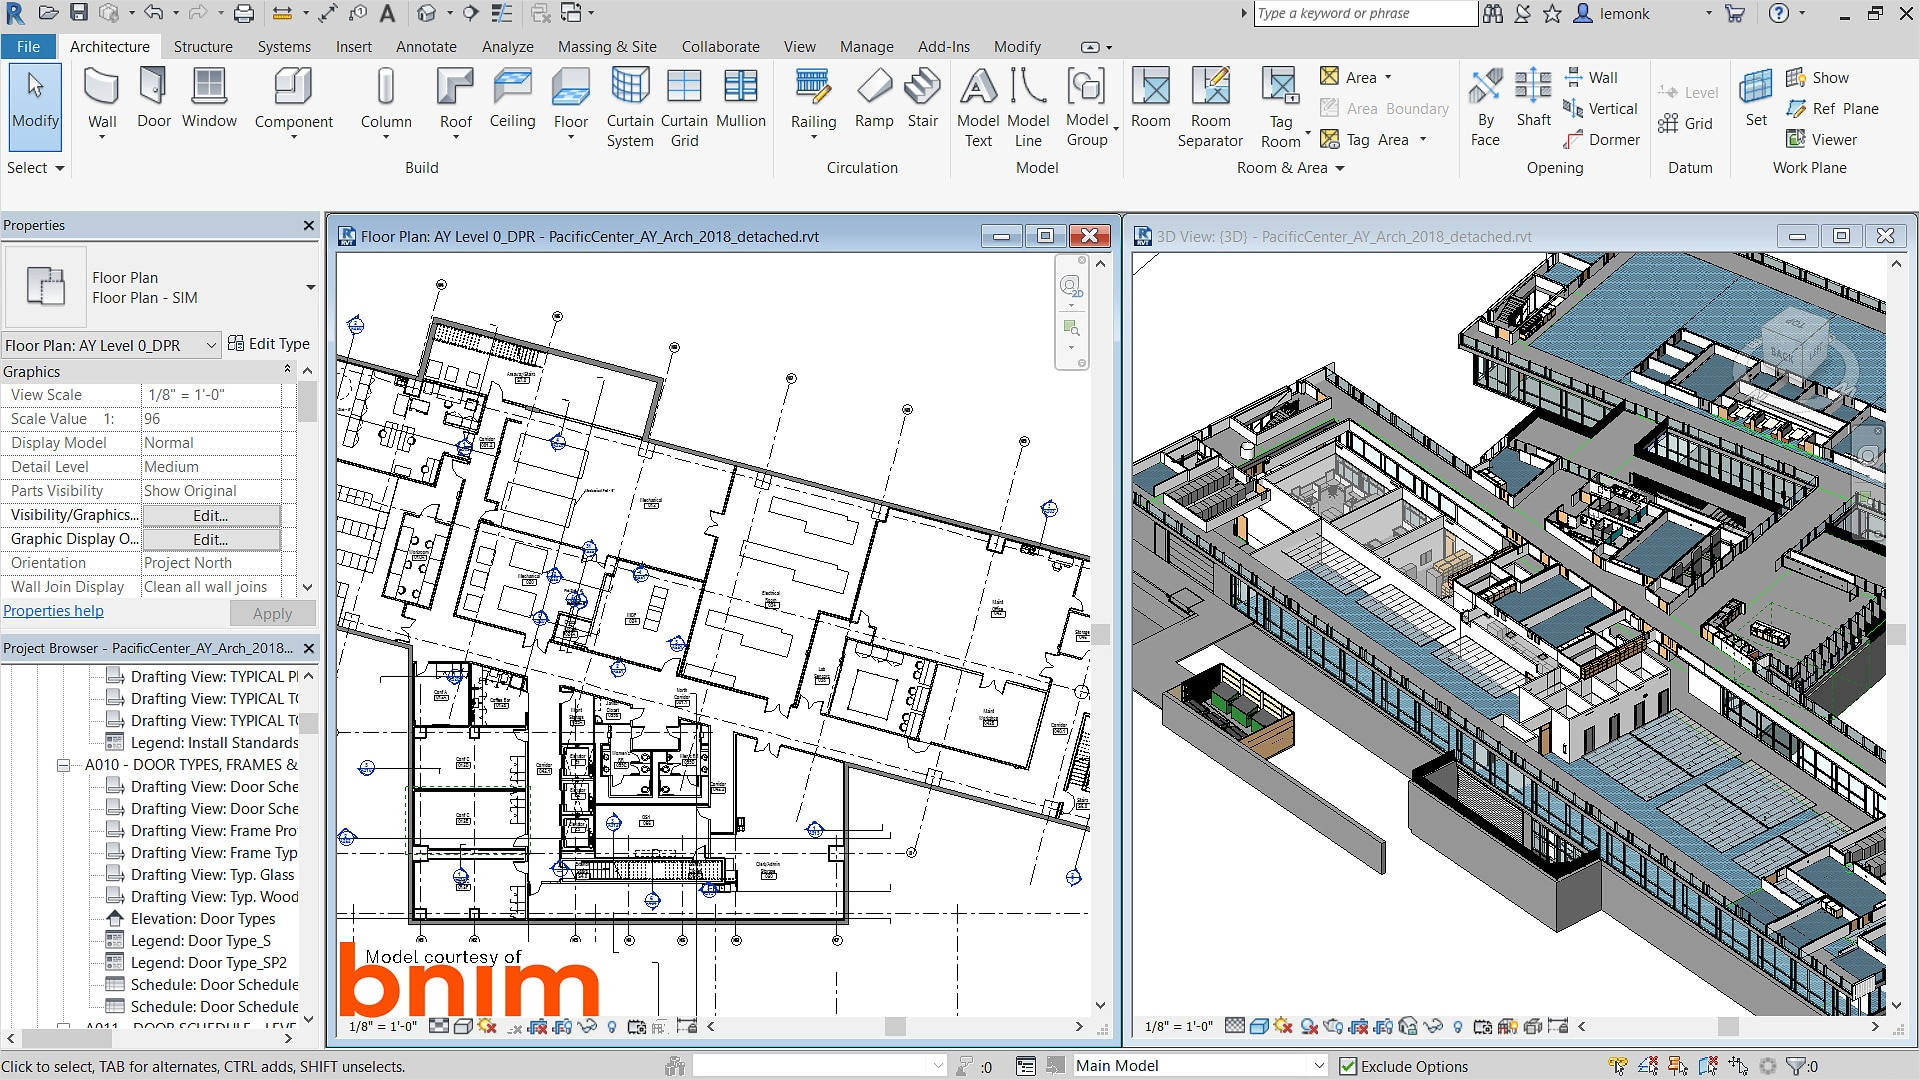 screen shot of person using Revit to turn blueprints into 3D models.